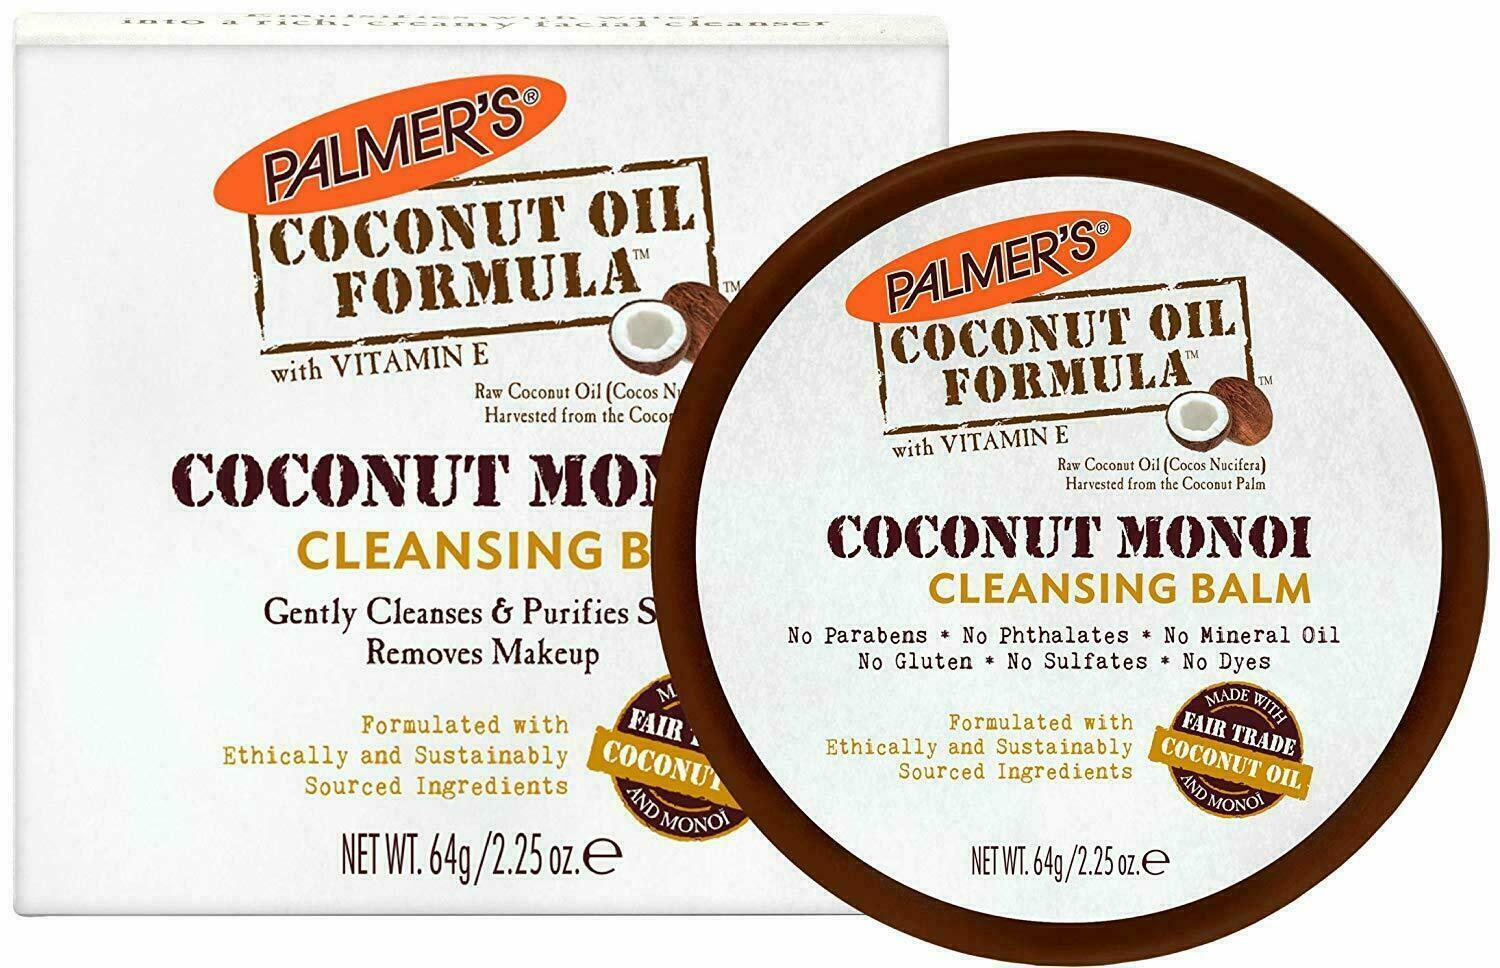 Palmer's Coconut Oil Formula with Vitamin E Cleansing Balm,